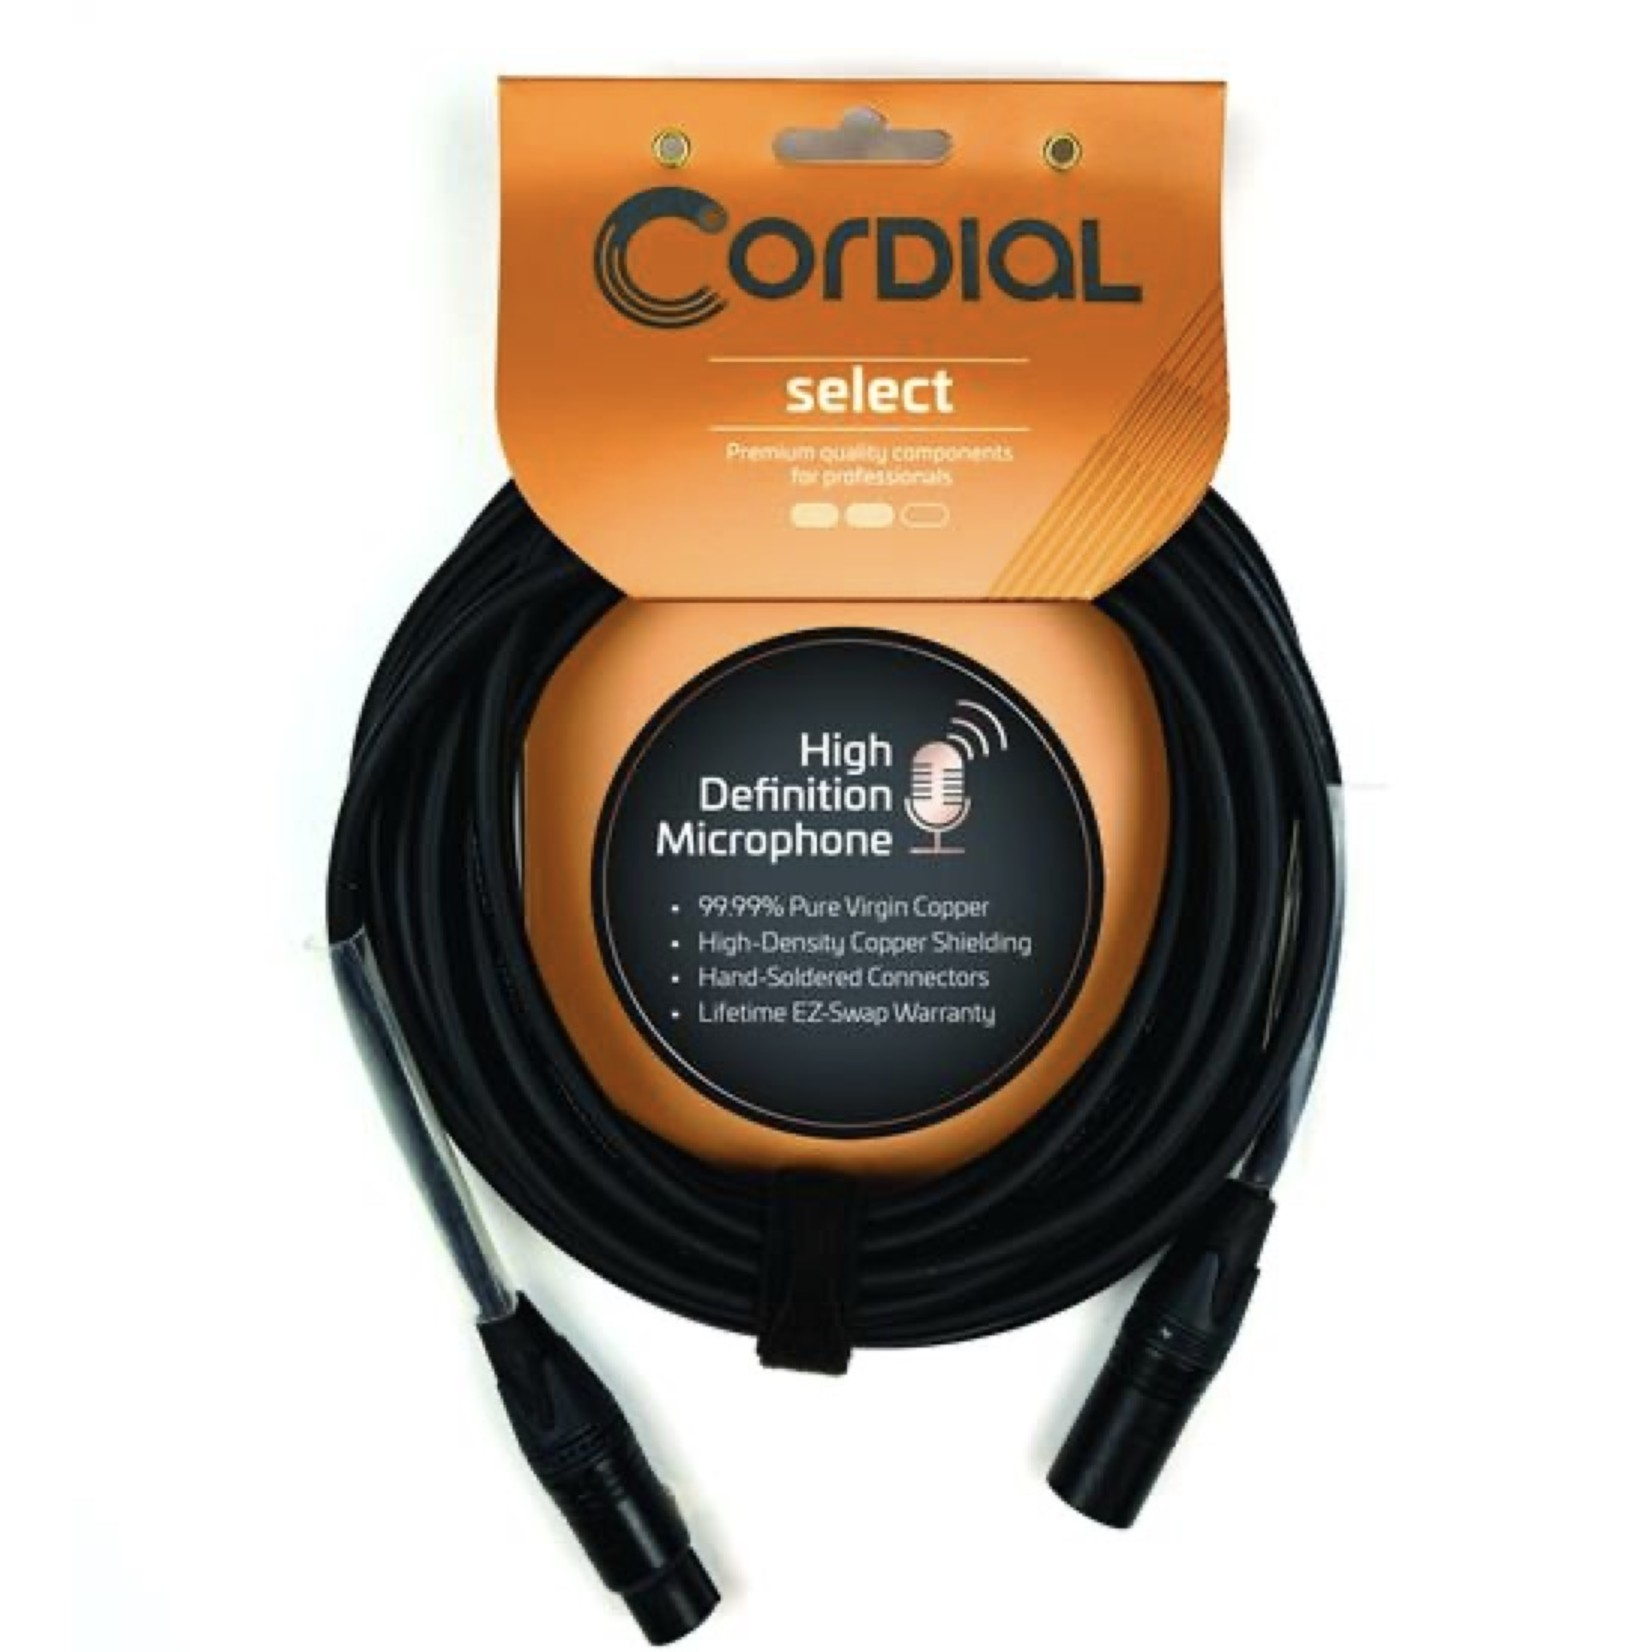 Cordial Cables Cordial Cables Premium Microphone Cable with Balanced XLR Connectors, Select Series - 25-Foot Black Cable (7.5 FM)